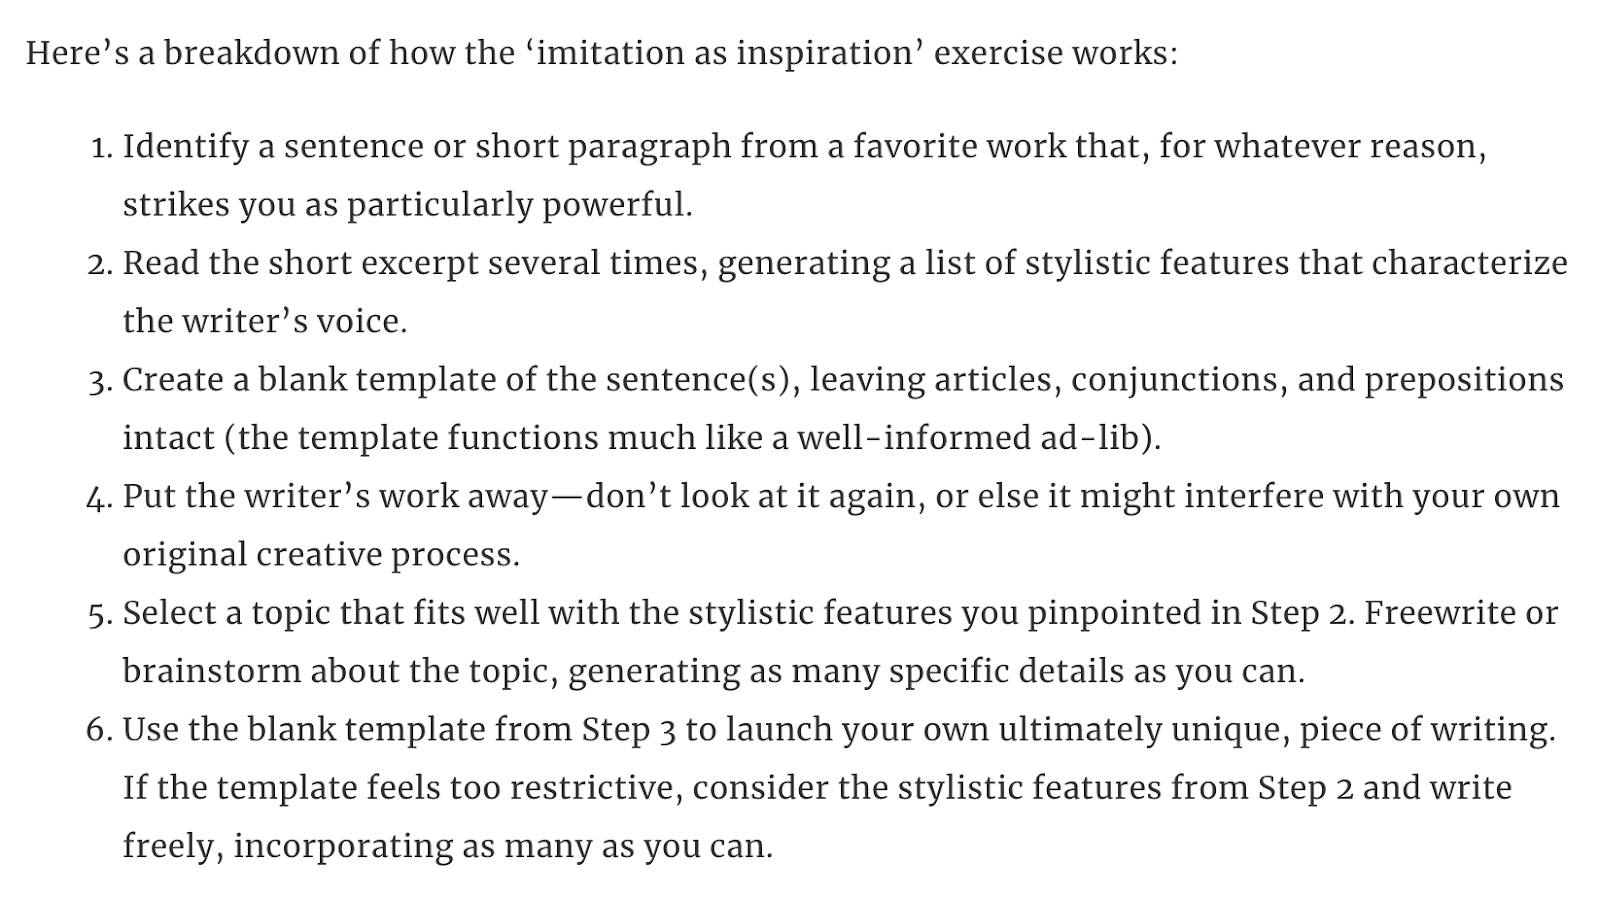 Breakdown of the 'imitation as inspiration' exercise